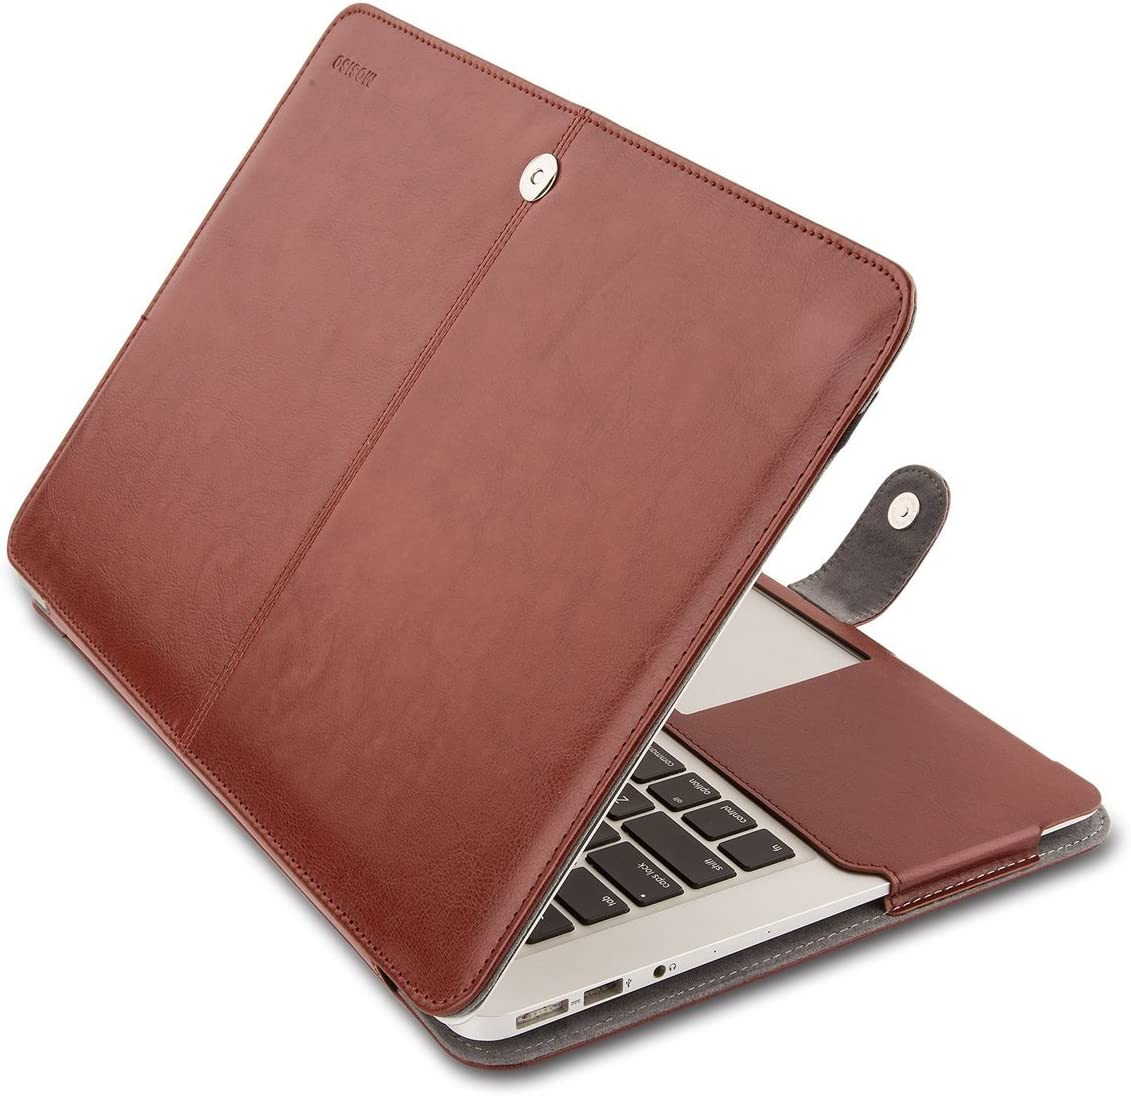 MOSISO MacBook Air 13 inch Case, Premium PU Leather Case Book Folio Protective Stand Cover Sleeve Compatible with MacBook Air 13 inch A1466 / A1369 (Older Version Release 2010-2017), Brown